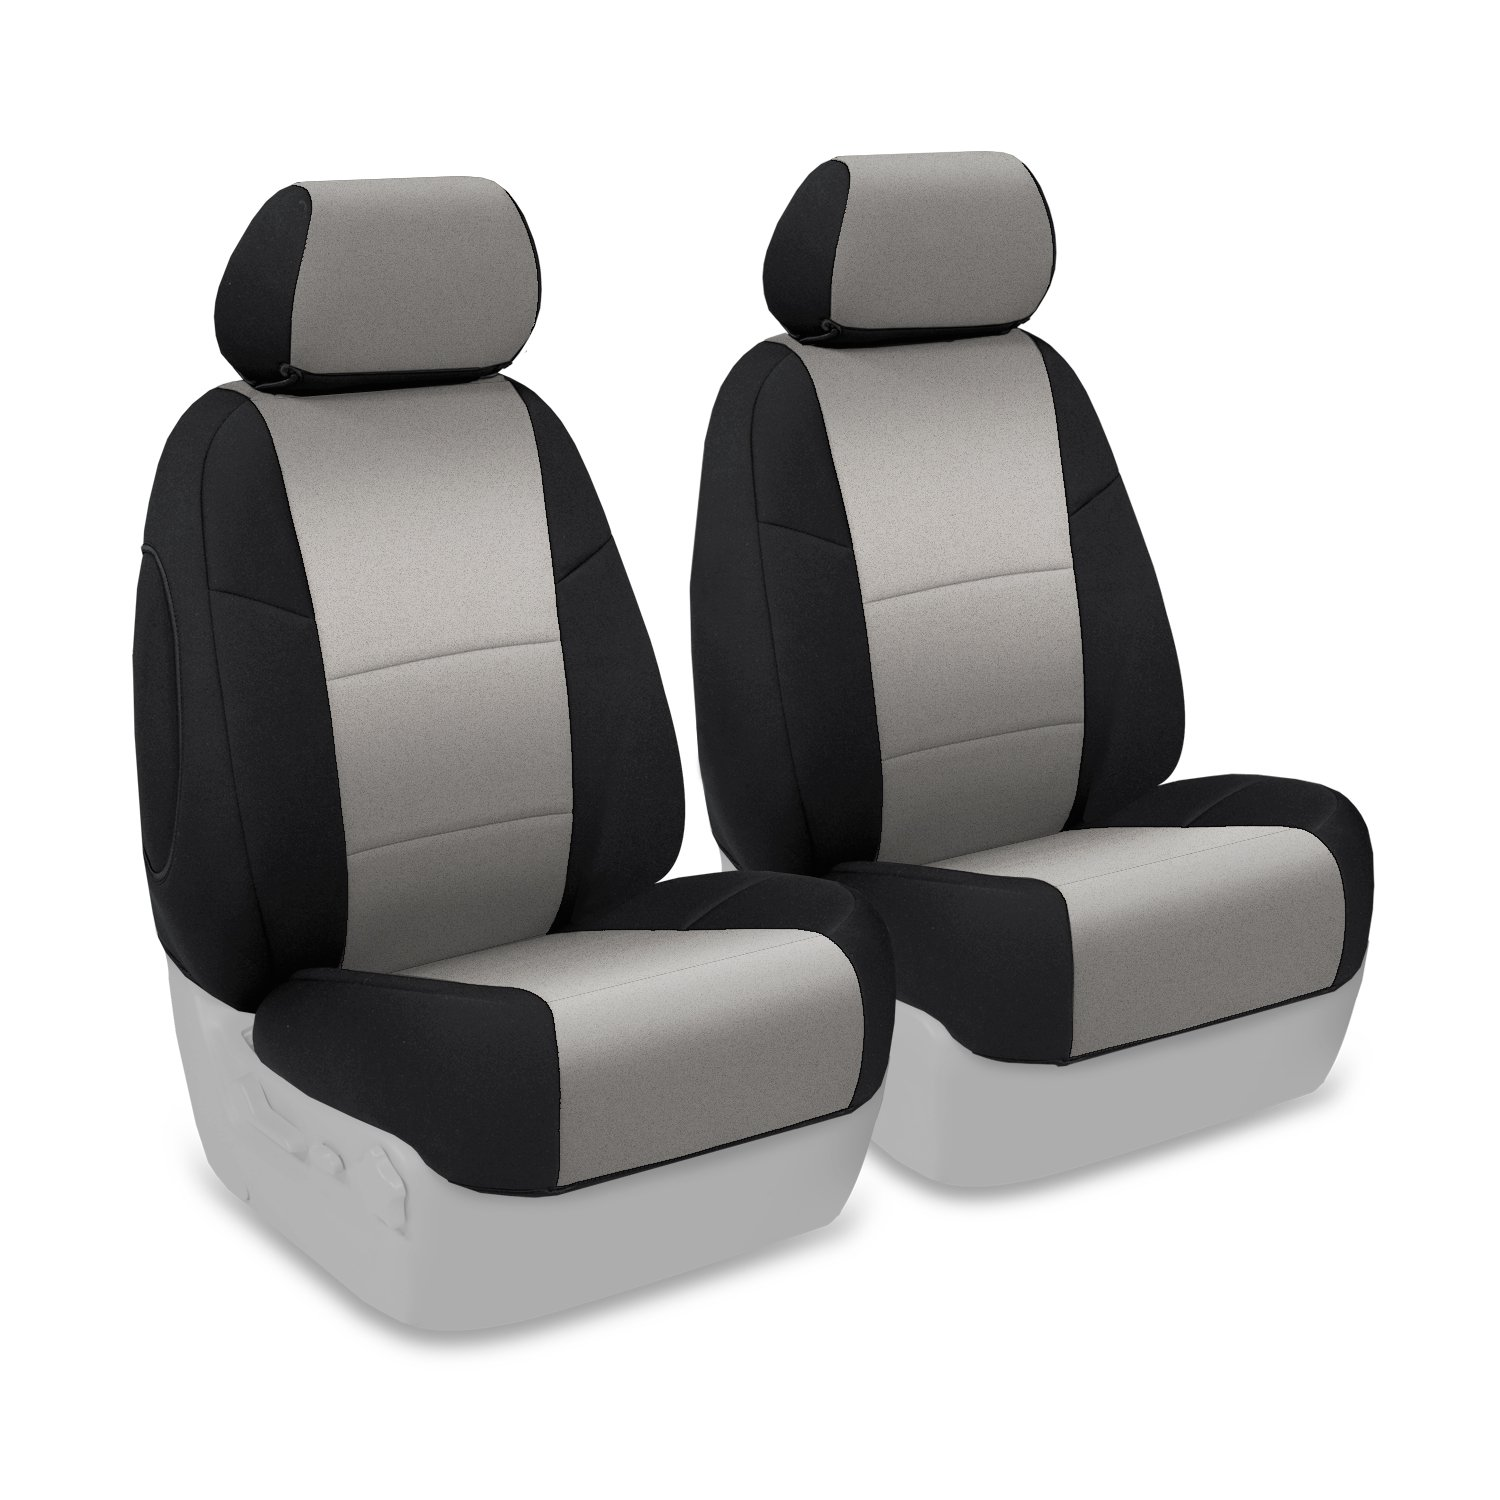 Amazon.com: Coverking Custom Fit Front 50/50 Bucket Seat Cover for ...